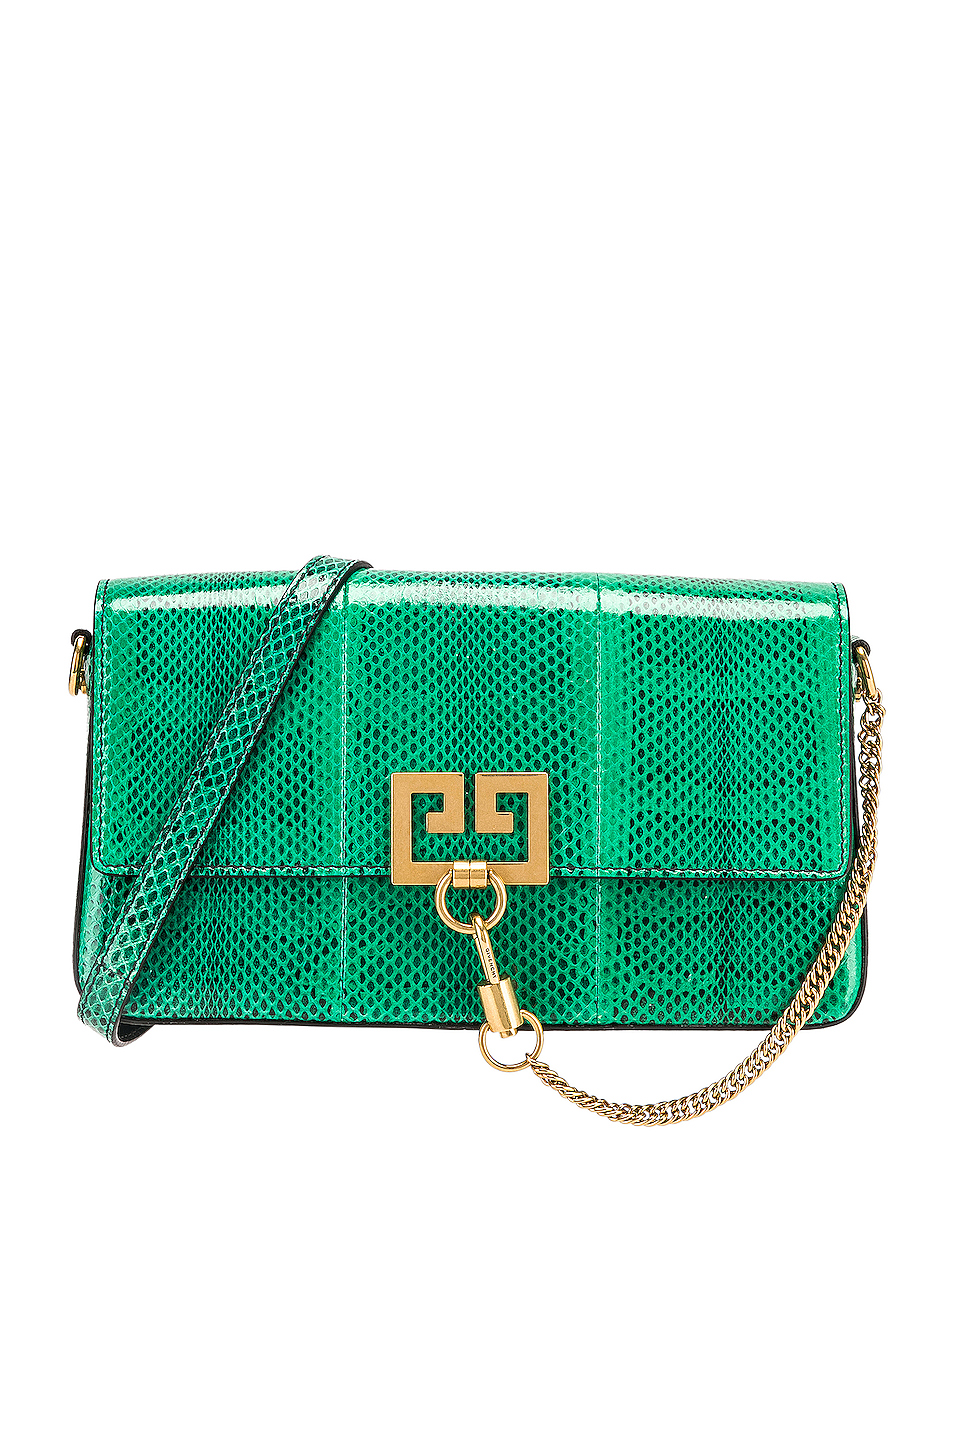 Givenchy Small Charm Shoulder Bag